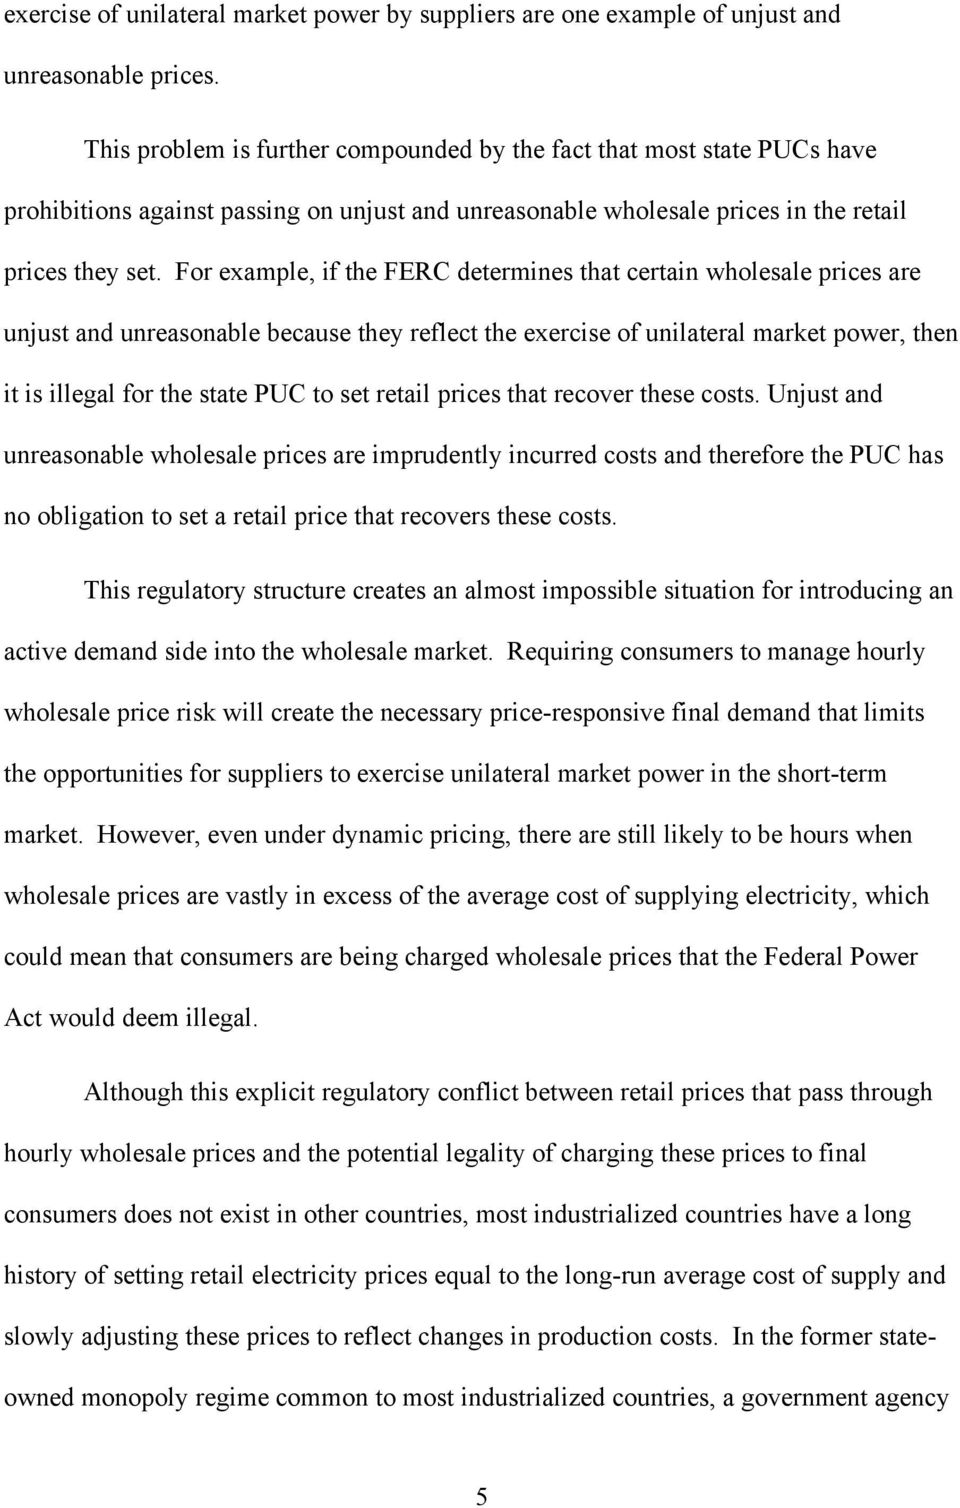 For example, if the FERC determines that certain wholesale prices are unjust and unreasonable because they reflect the exercise of unilateral market power, then it is illegal for the state PUC to set